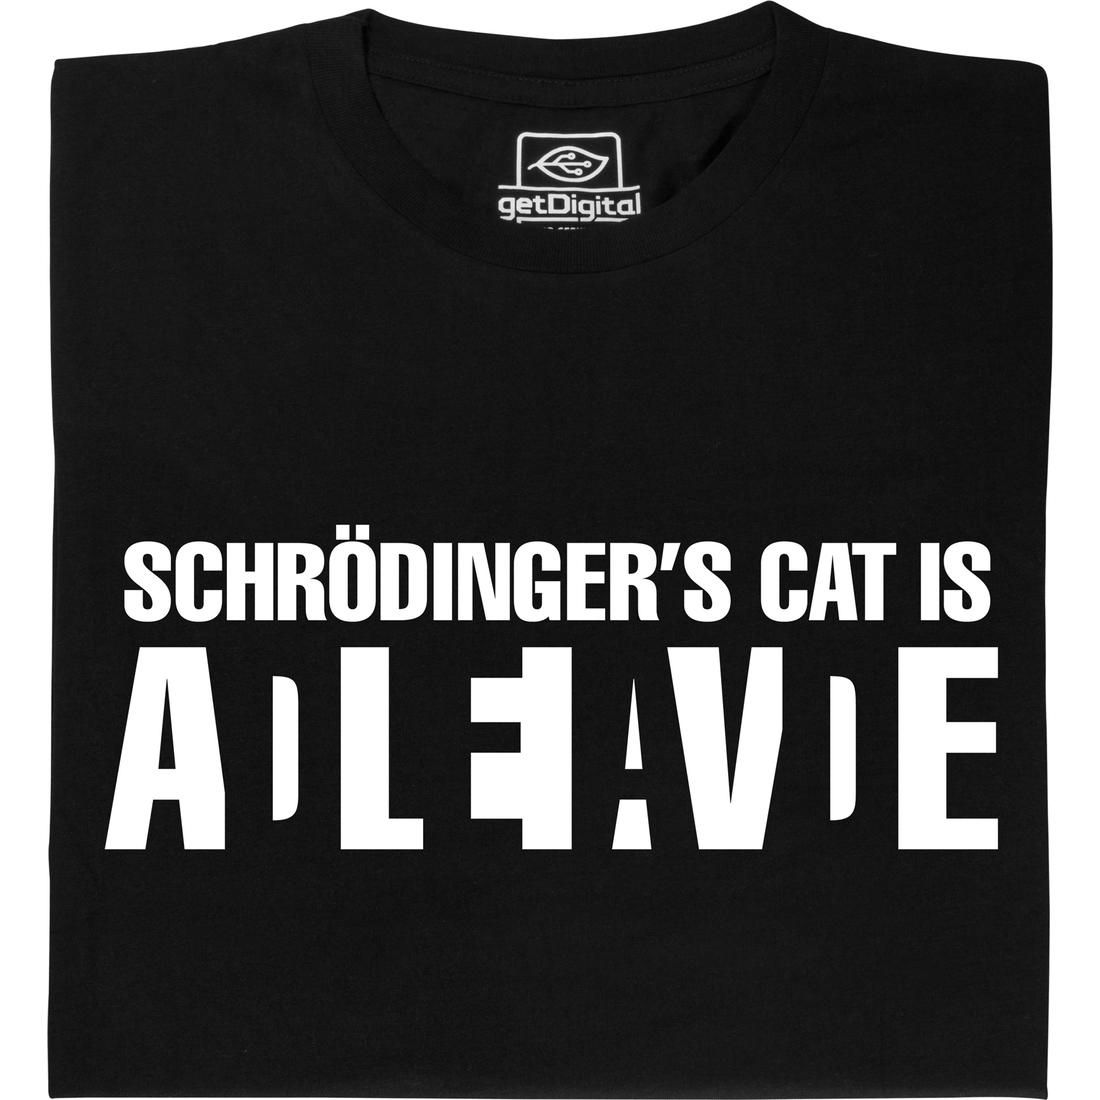 Wanted Schrodingers Cat t-shirt - Somethinggeeky